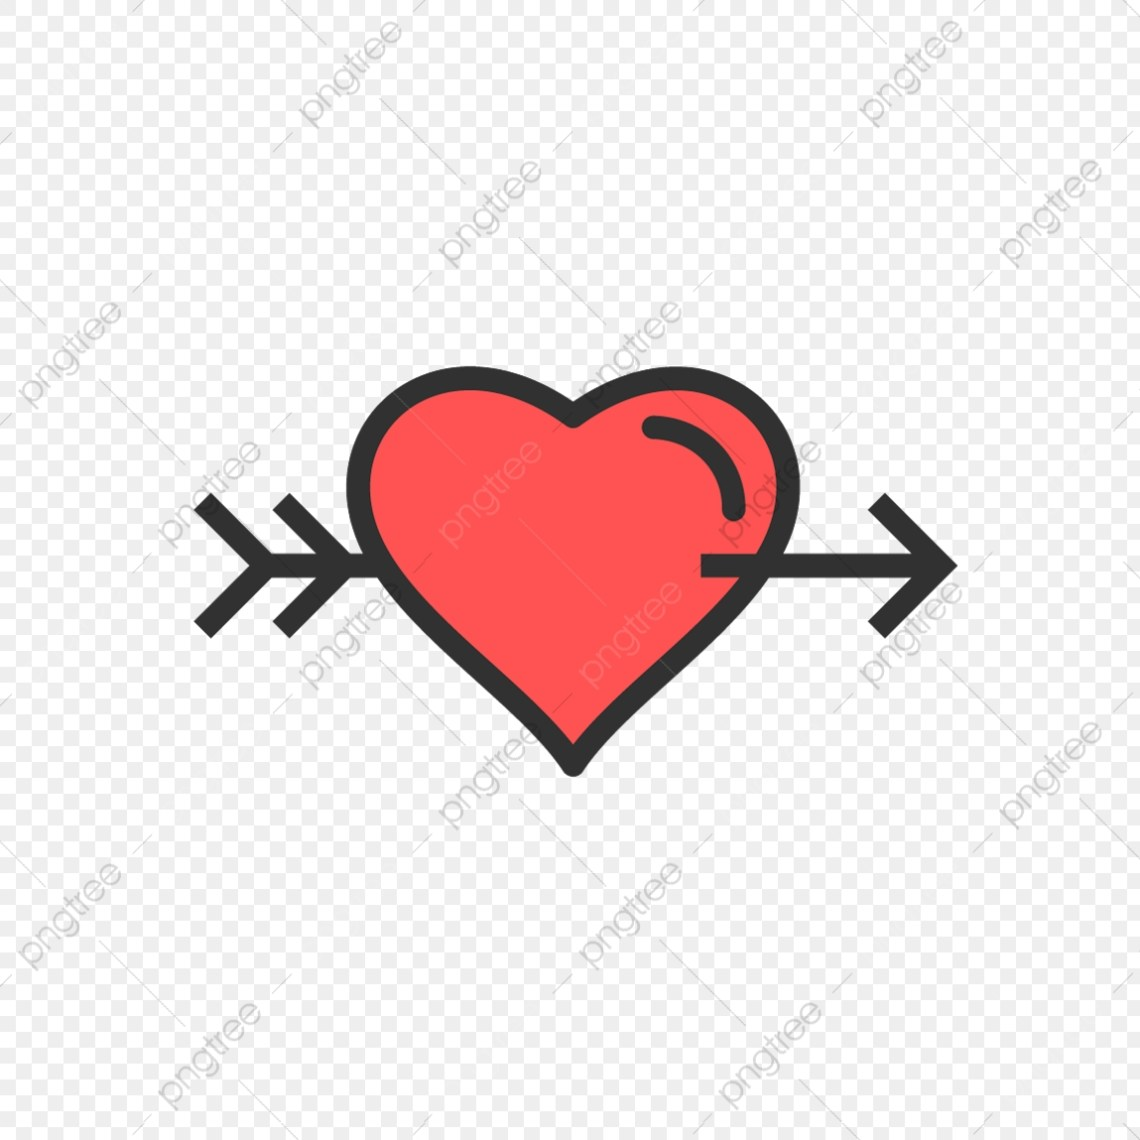 Download Vector Heart Cross Arrow Icon, Arrow, Heart, Love PNG and ...